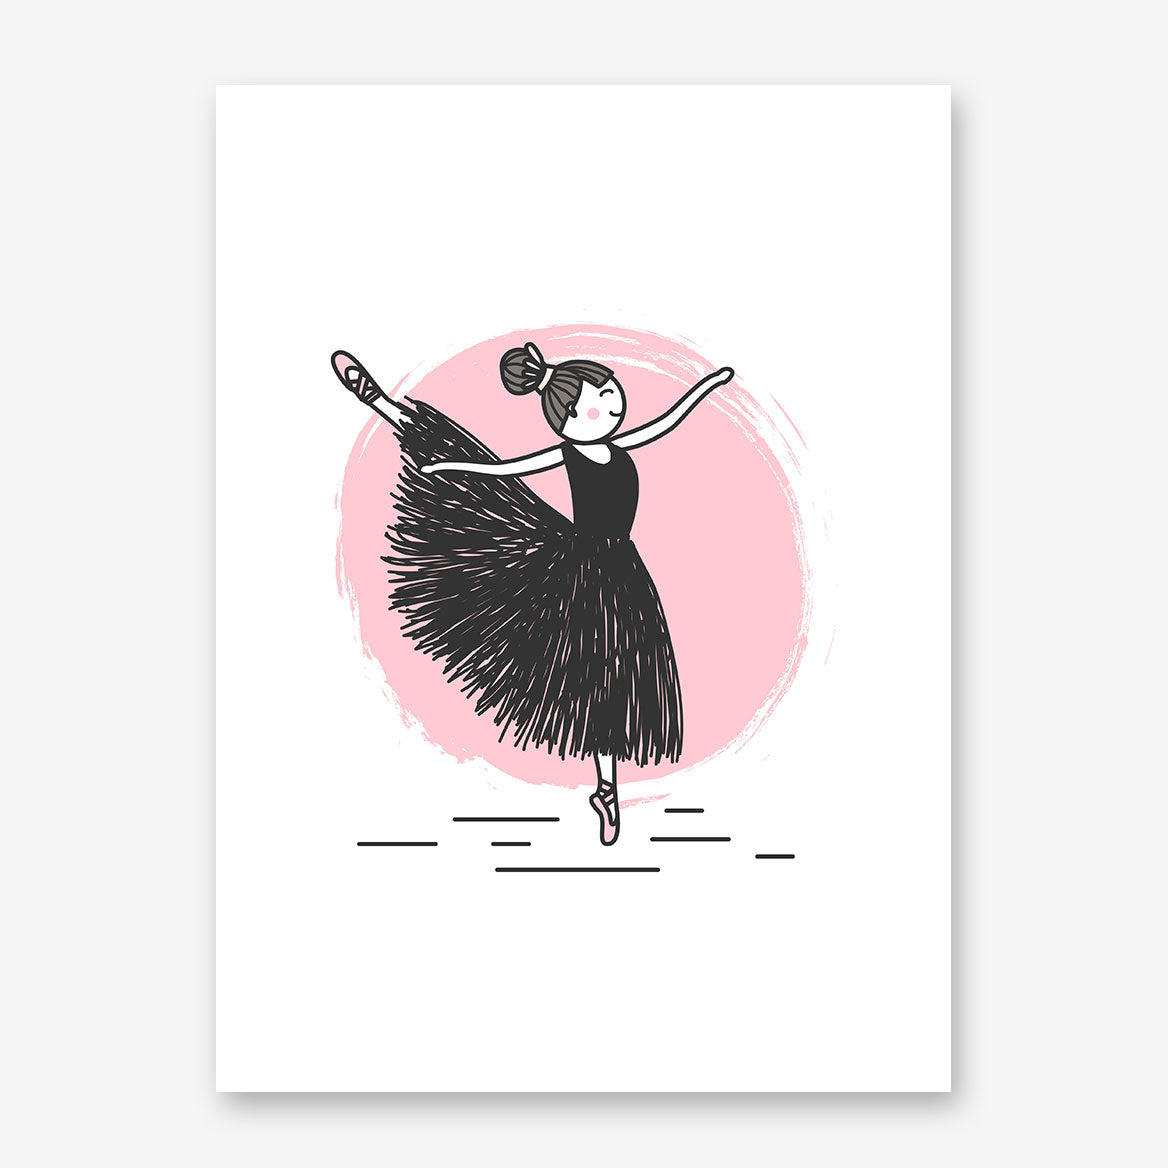 Cute drawing poster print with dancing ballerina sketch, on pink and white background